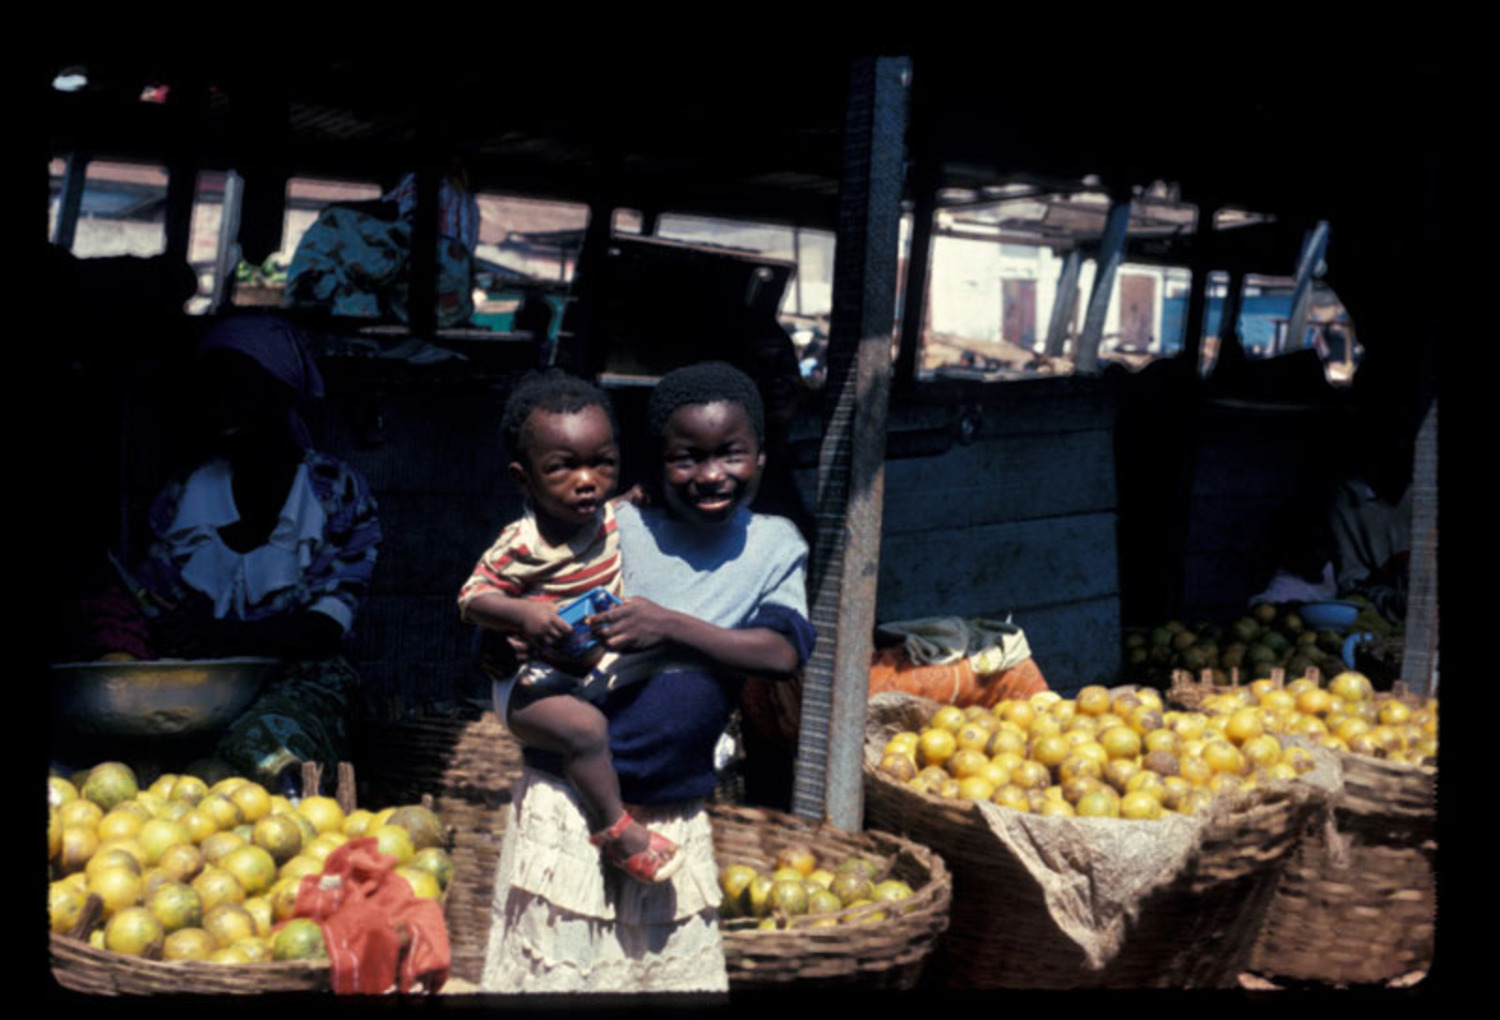 Girl, 10-12 years old, holding infant before orange stalls